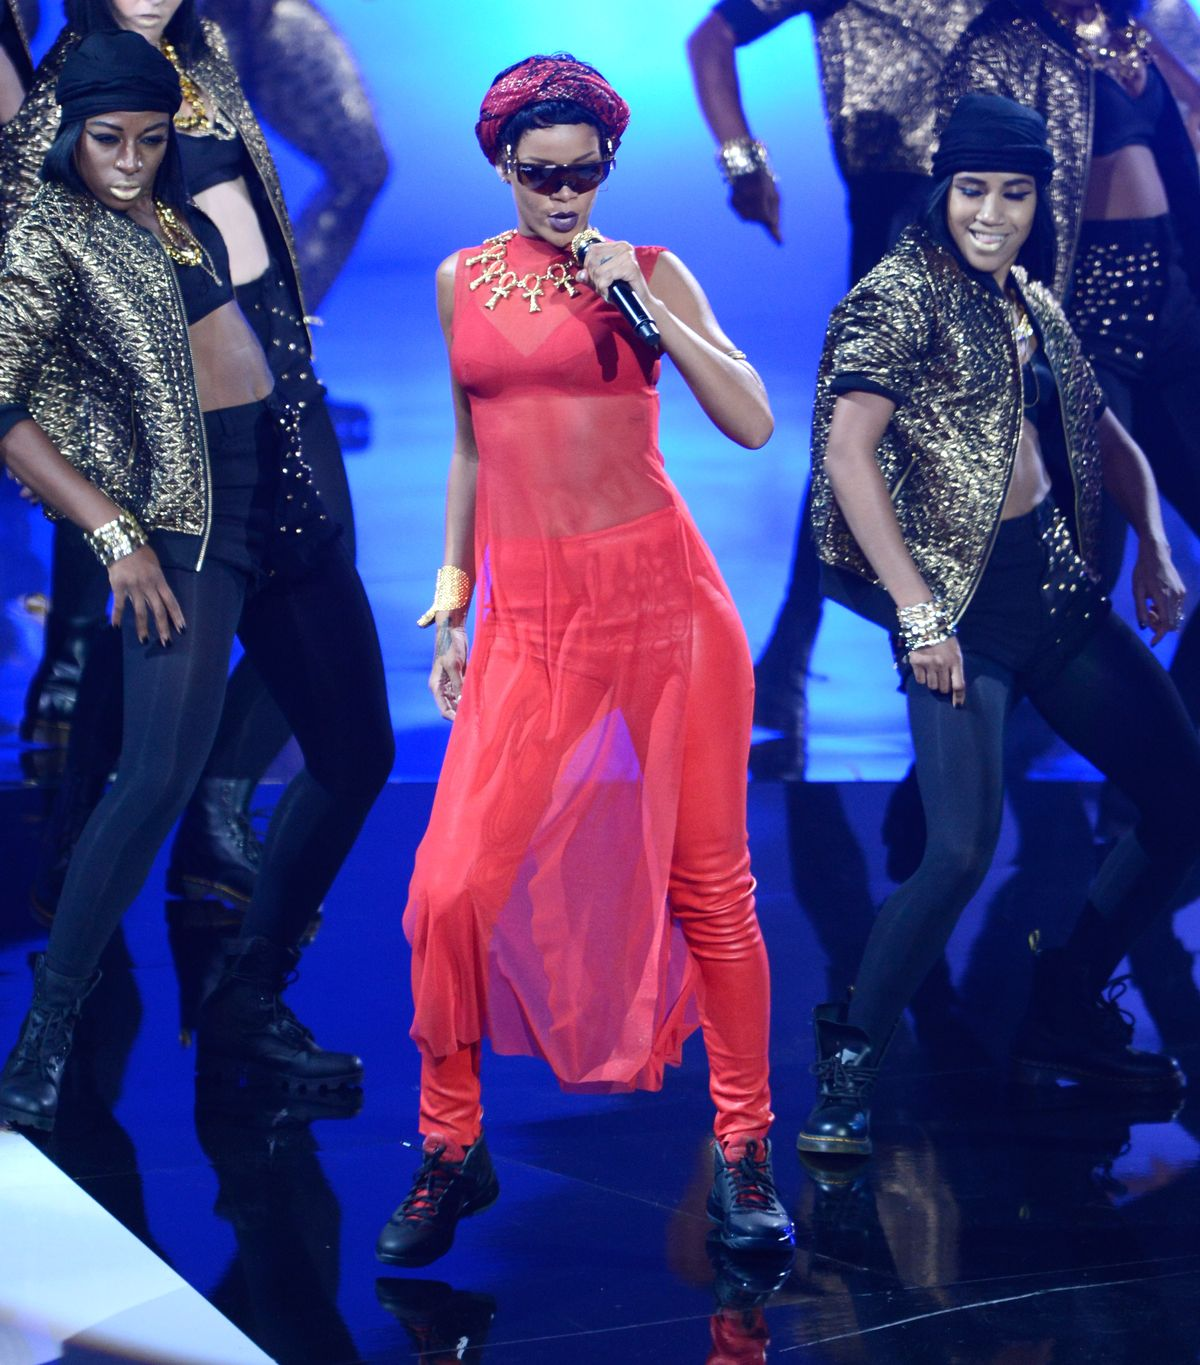 LOS ANGELES, CA - SEPTEMBER 06:  Rihanna performs onstage during the 2012 MTV Video Music Awards at Staples Center on September 6, 2012 in Los Angeles, California.  (Photo by Kevin Mazur/WireImage)